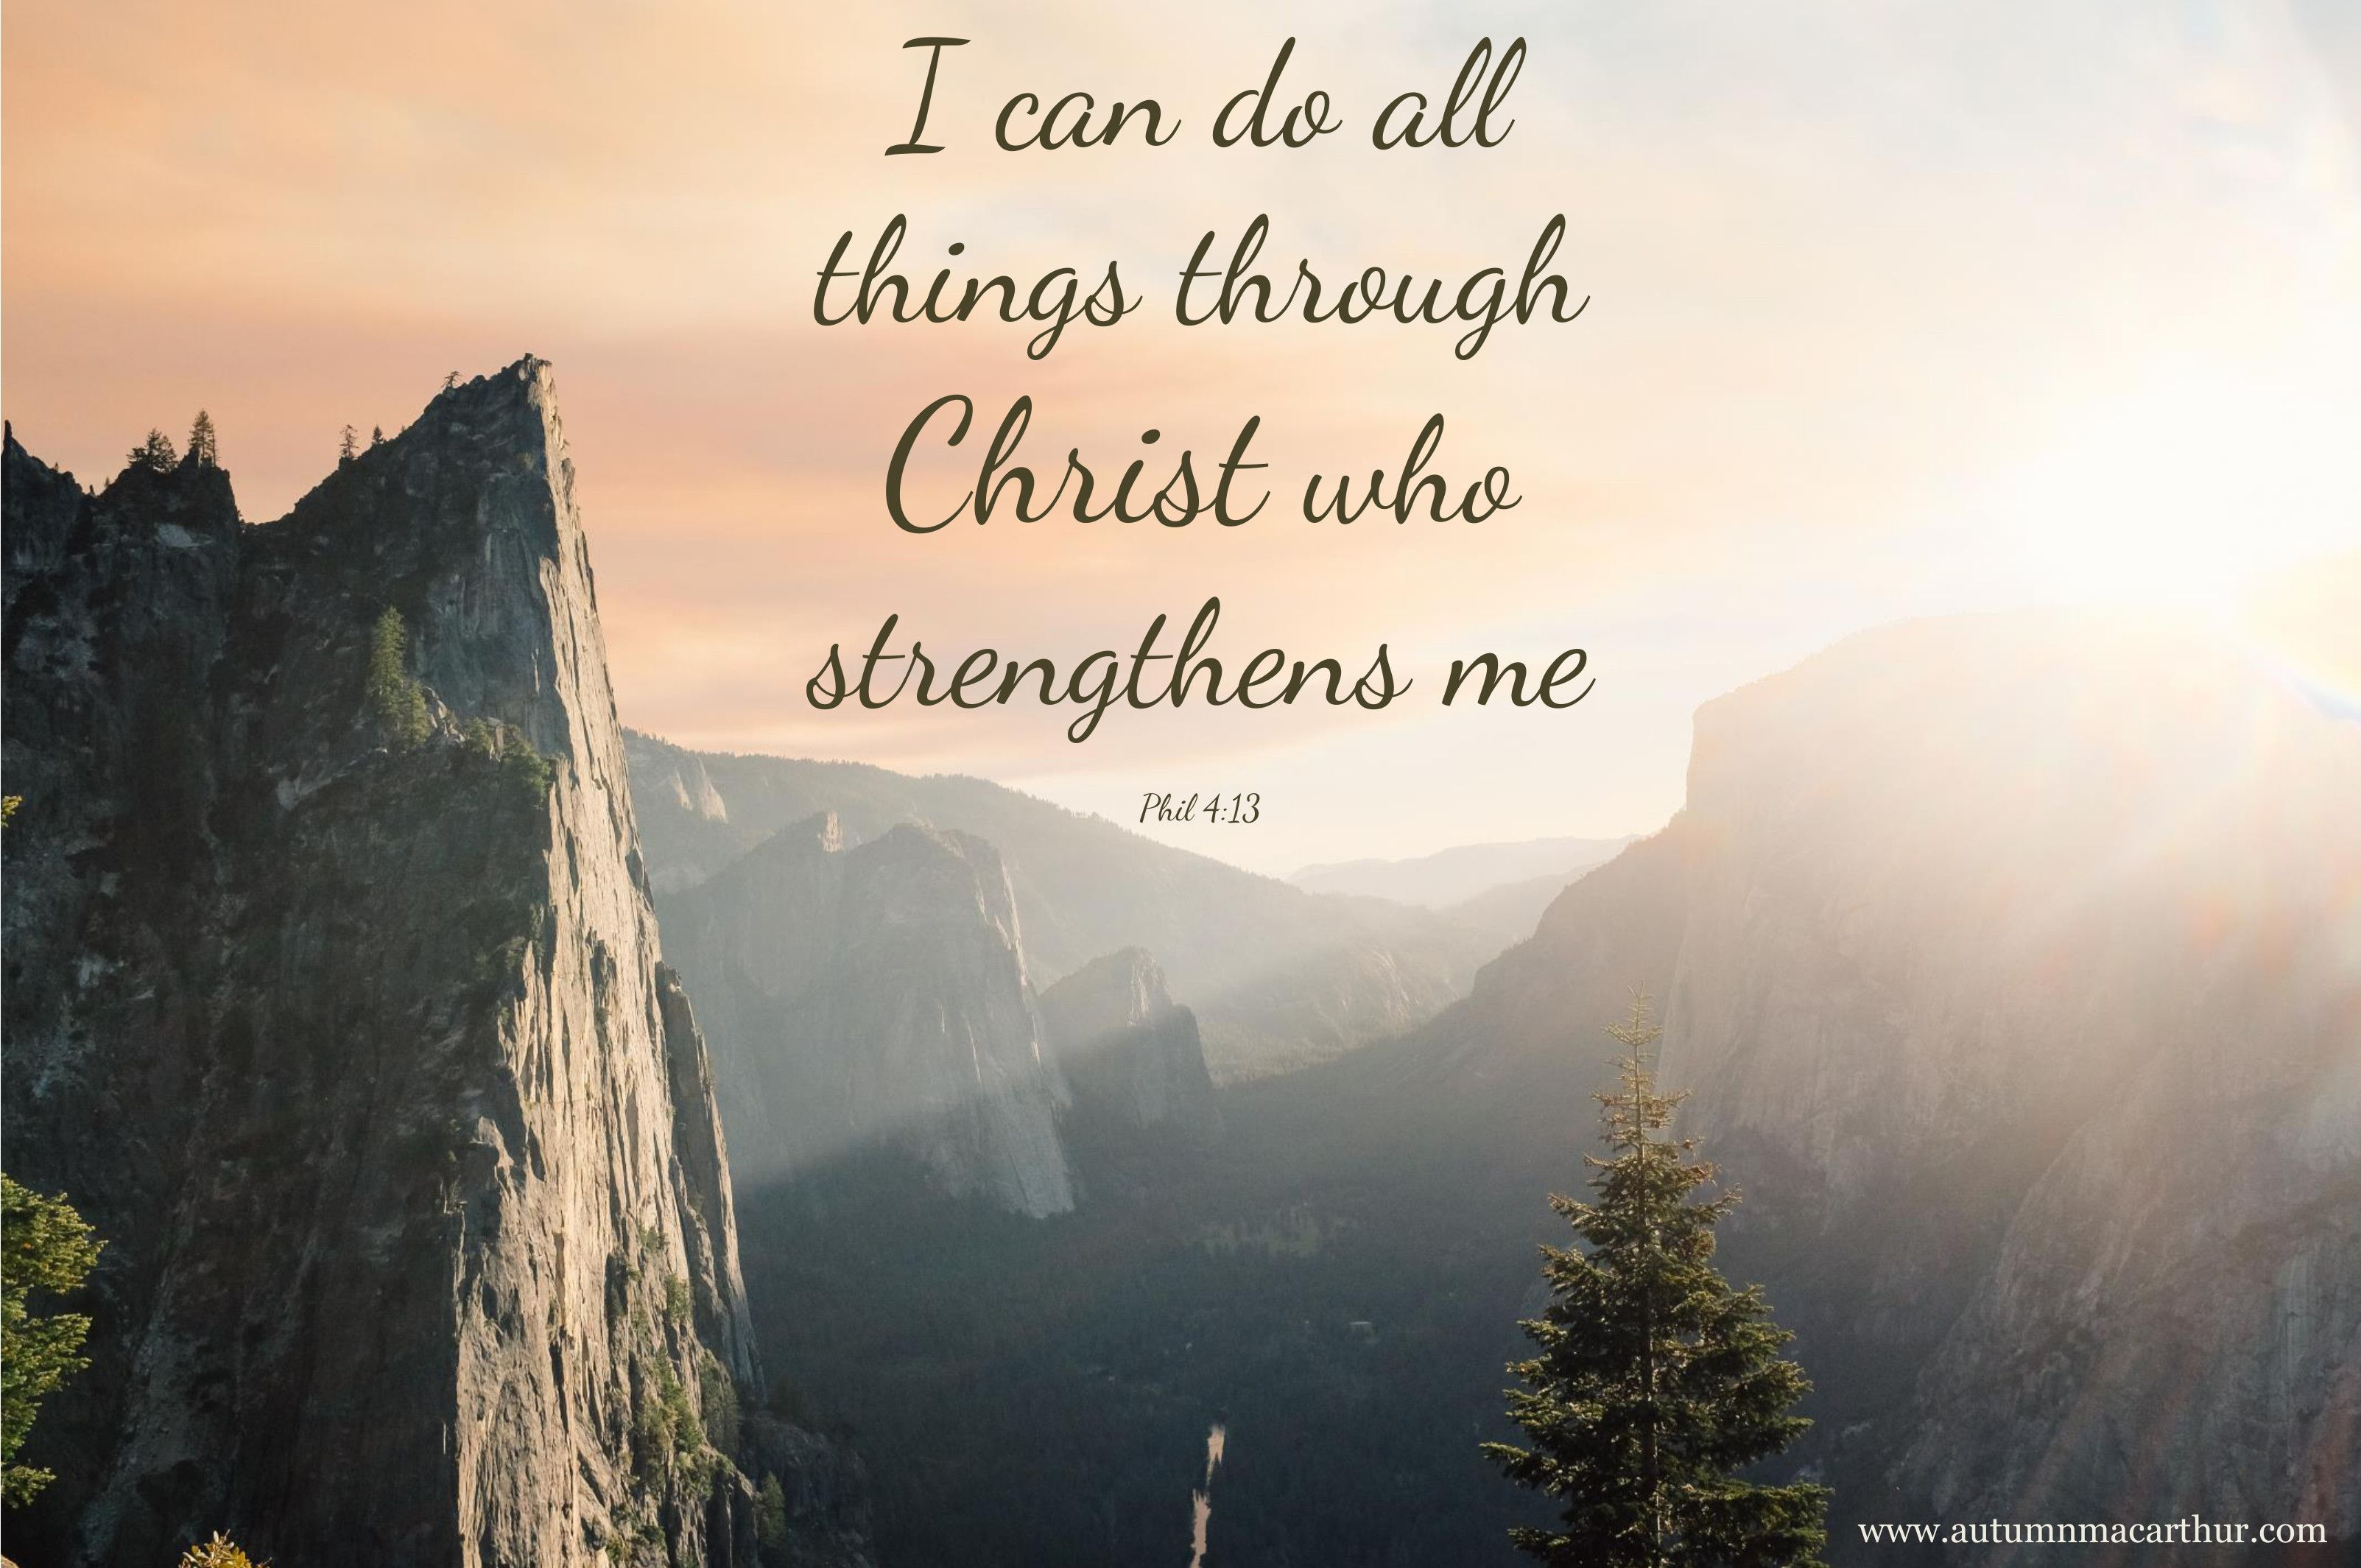 I Can Do All Things Through Christ Who Strengthens Me Phillipians 4